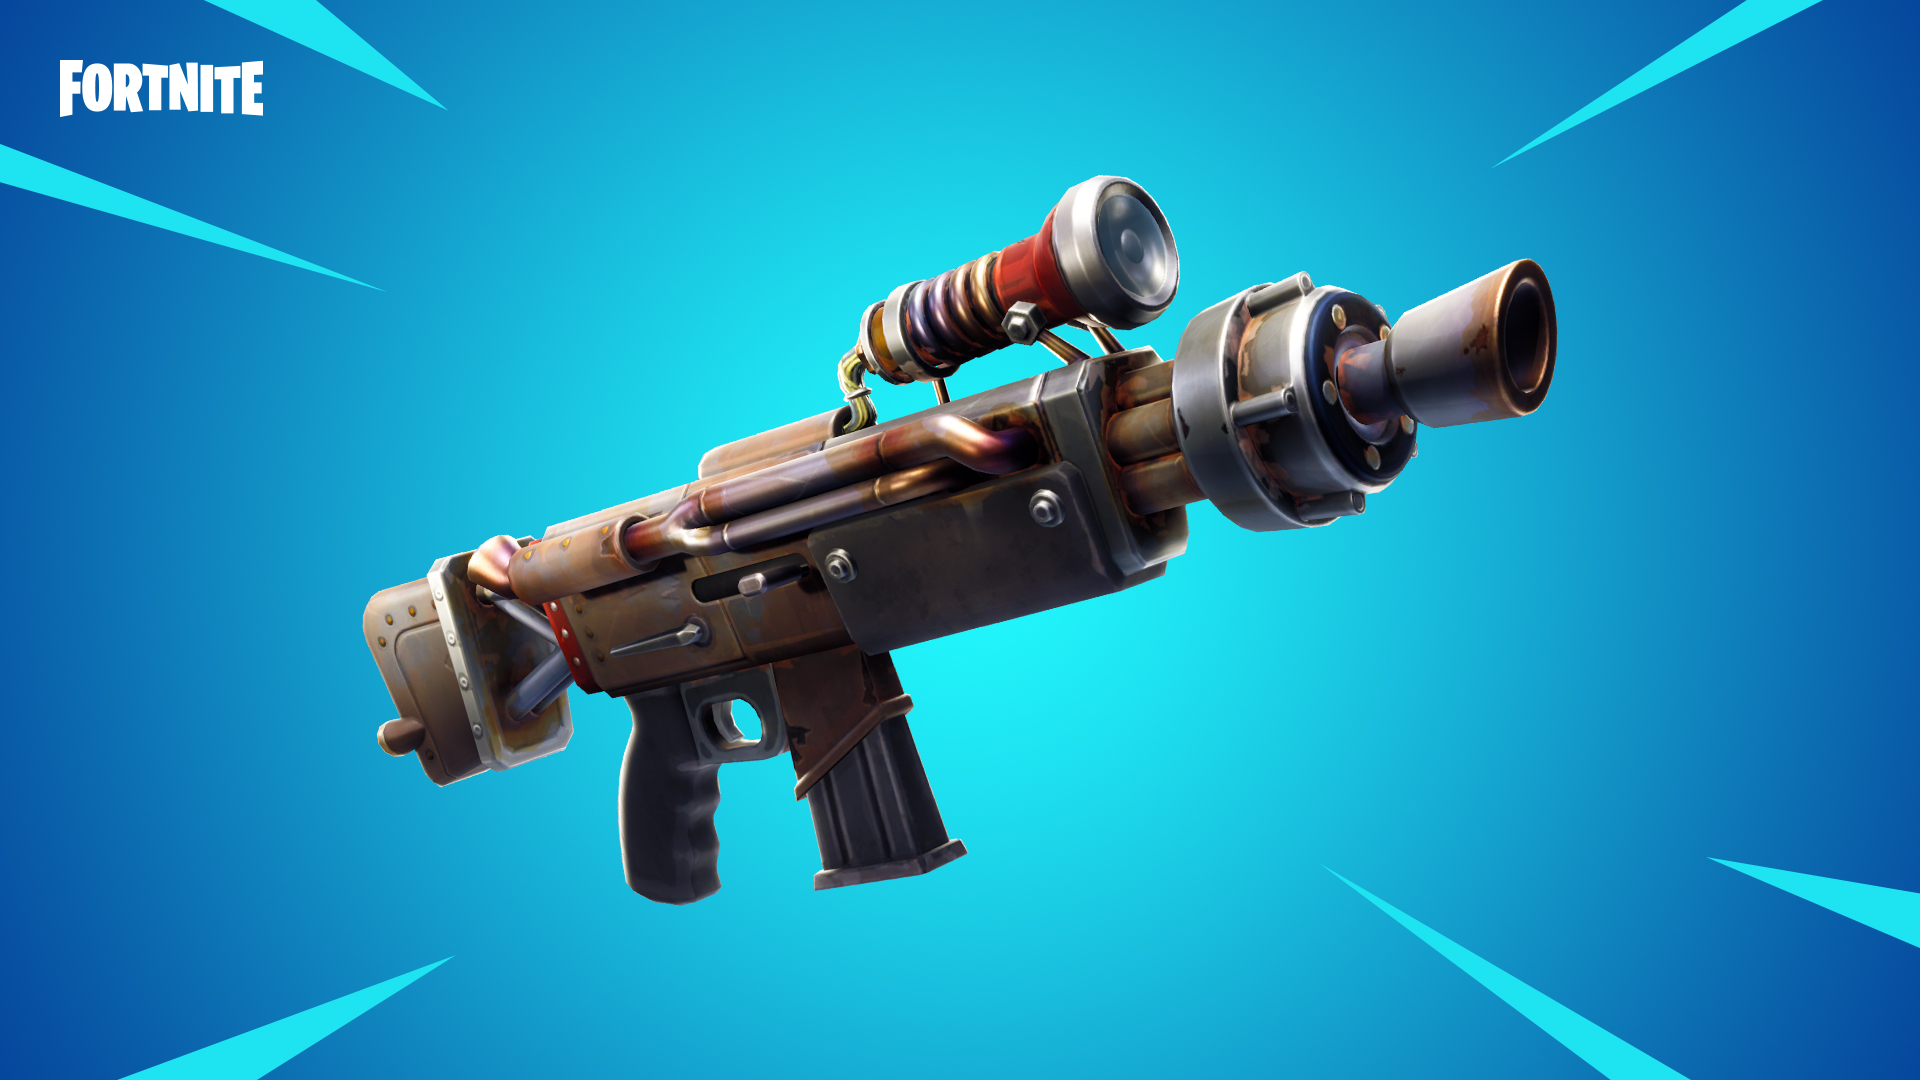 fortnite patch notes 6.11